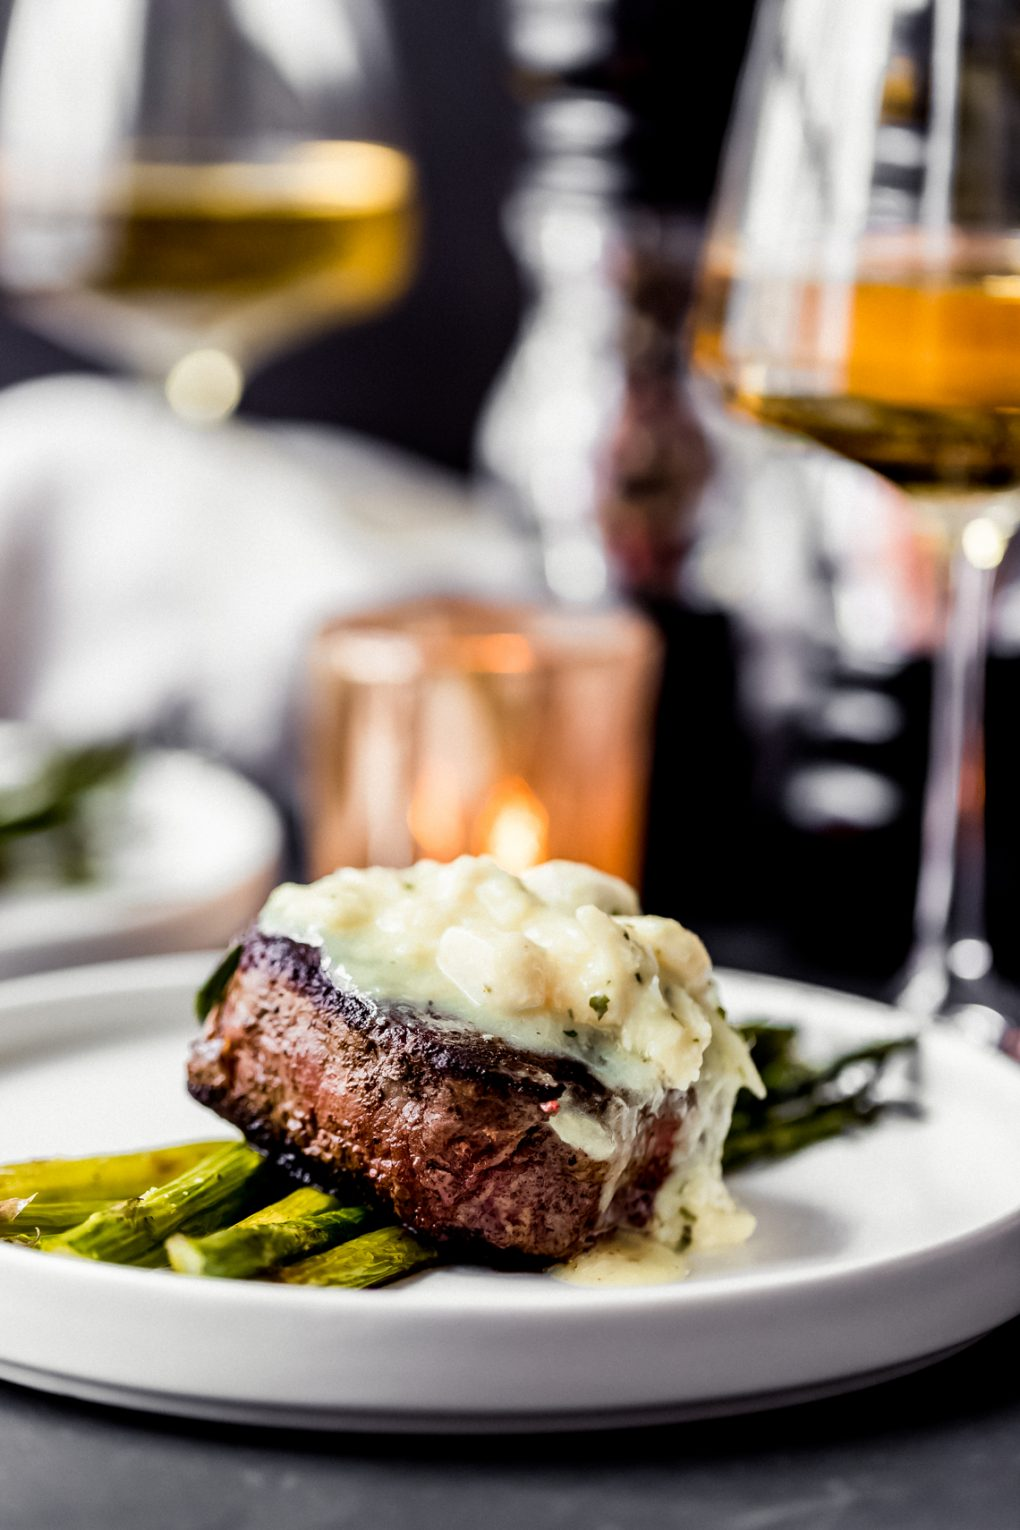 bison filet mignon Oscar on a plate with asparagus